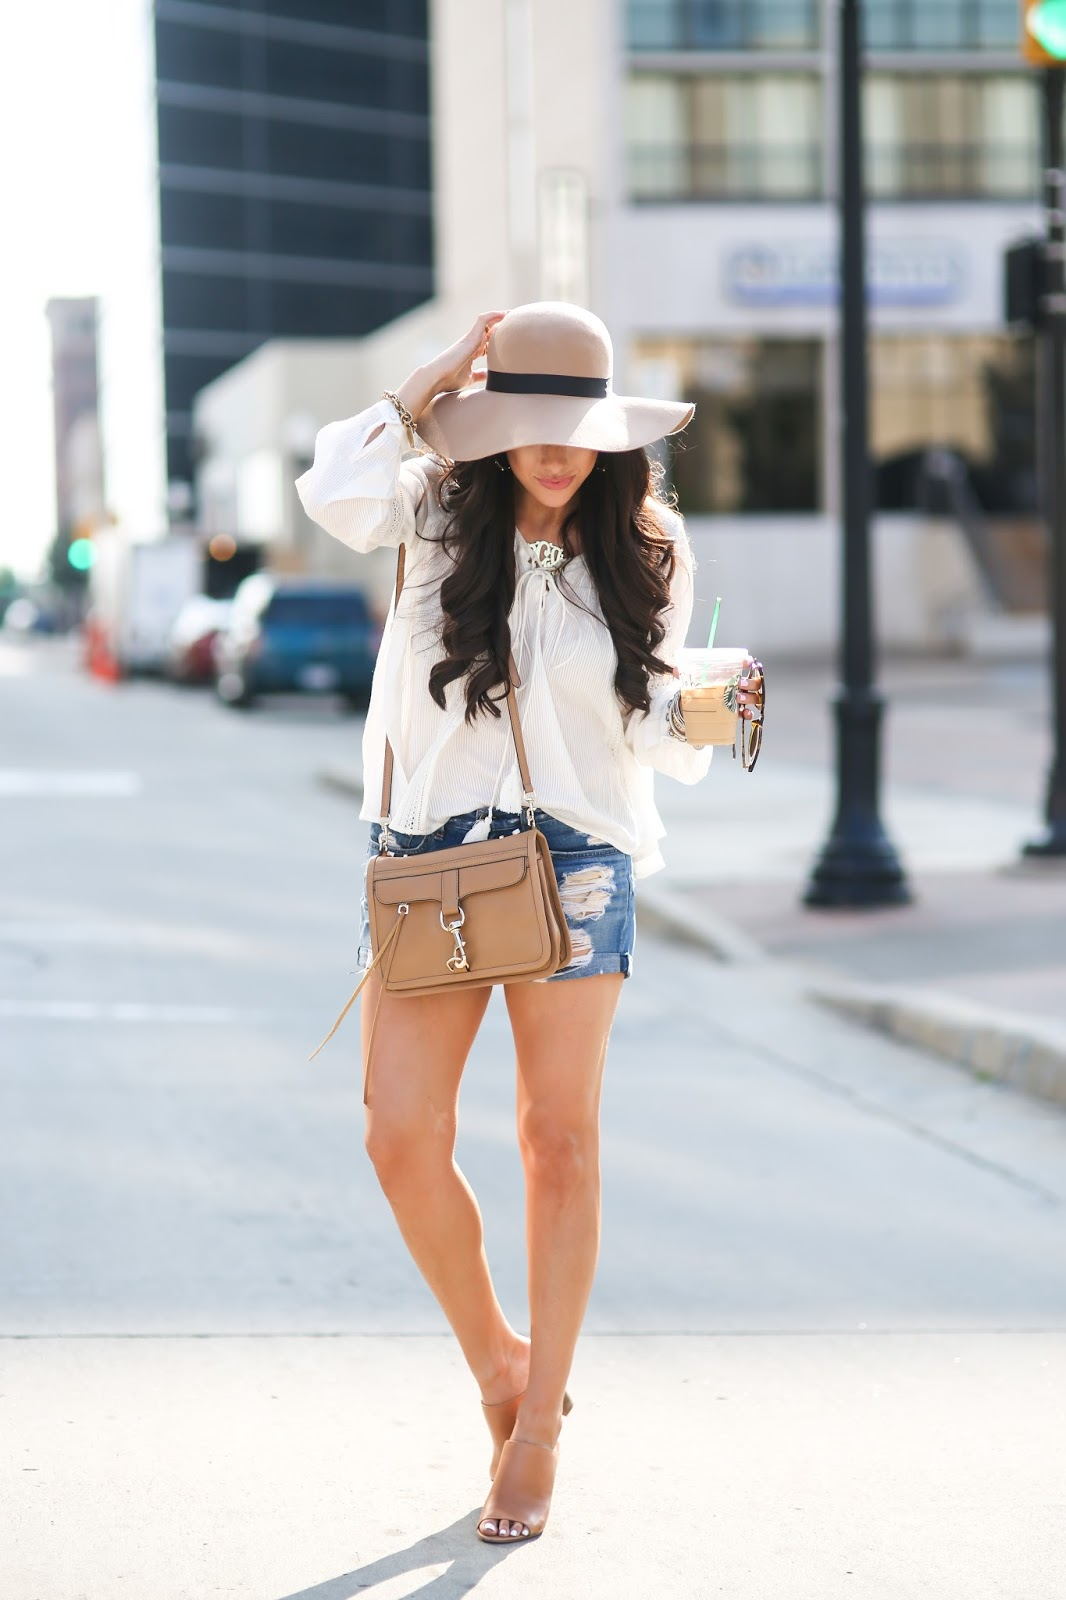 Floppy Hats & Boyfriend Shorts | The Sweetest Thing ...